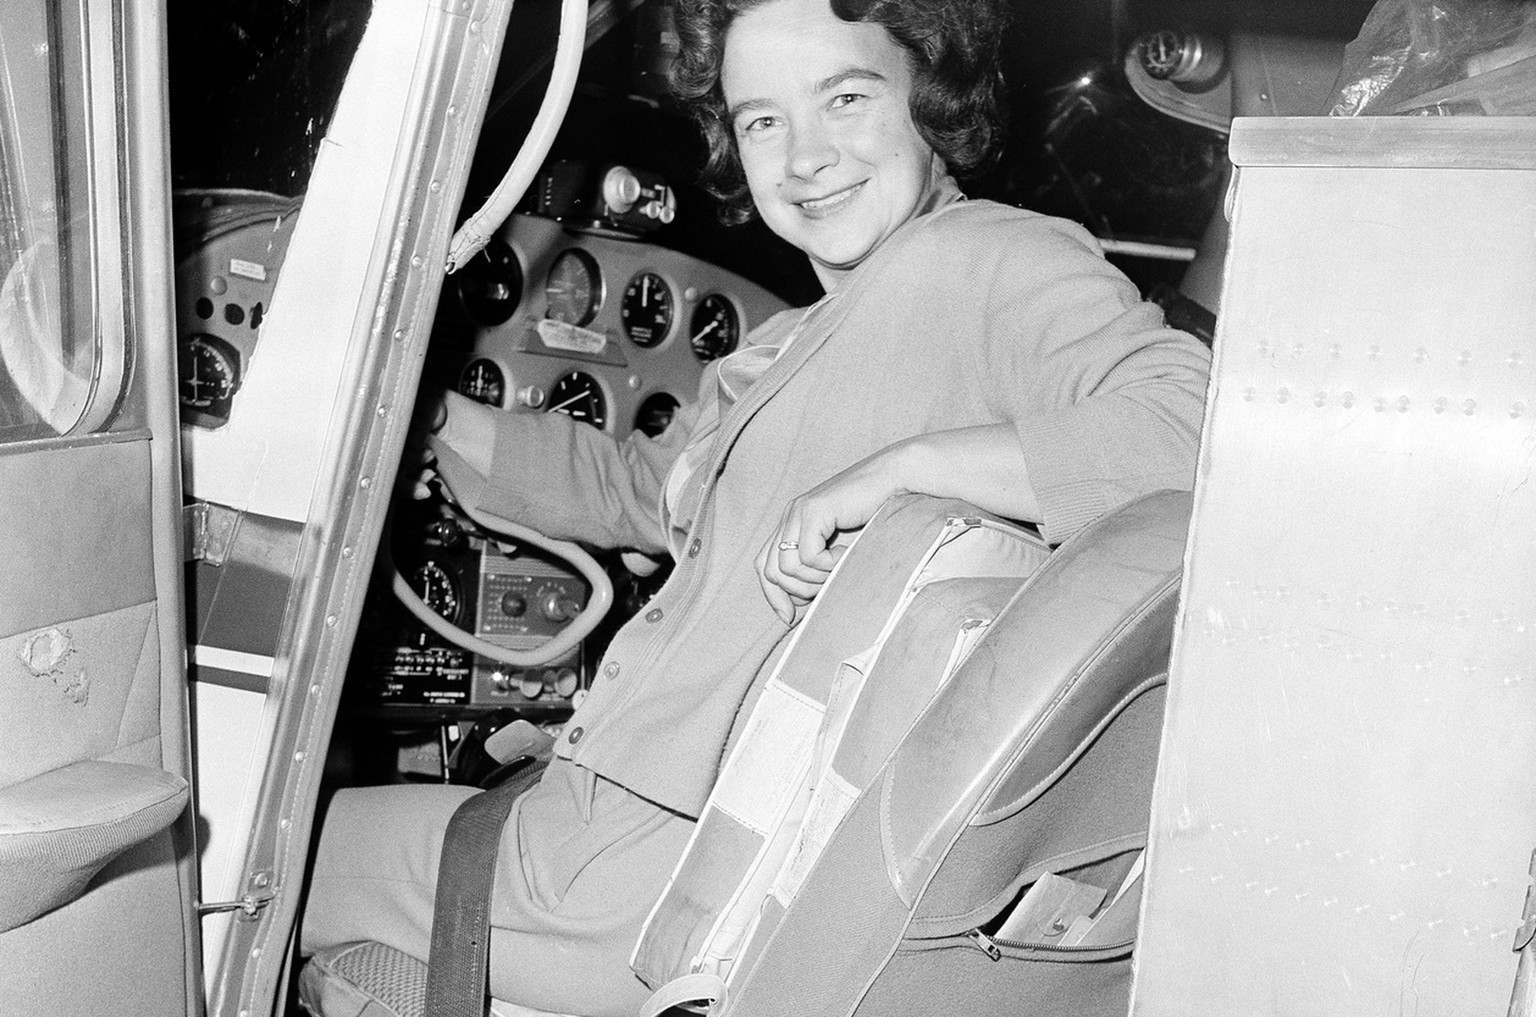 Jerrie Mock, Columbus, Ohio housewife who began her 'round-the-world flight on March 19, 1964, is shown with her plane, the Spirit of Columbus, prior to take-off. Mrs. Mock is piloting the single-engine propeller craft in an attempt to be the first woman to make a solo flight around the globe. (AP Photo/Gene Smith)